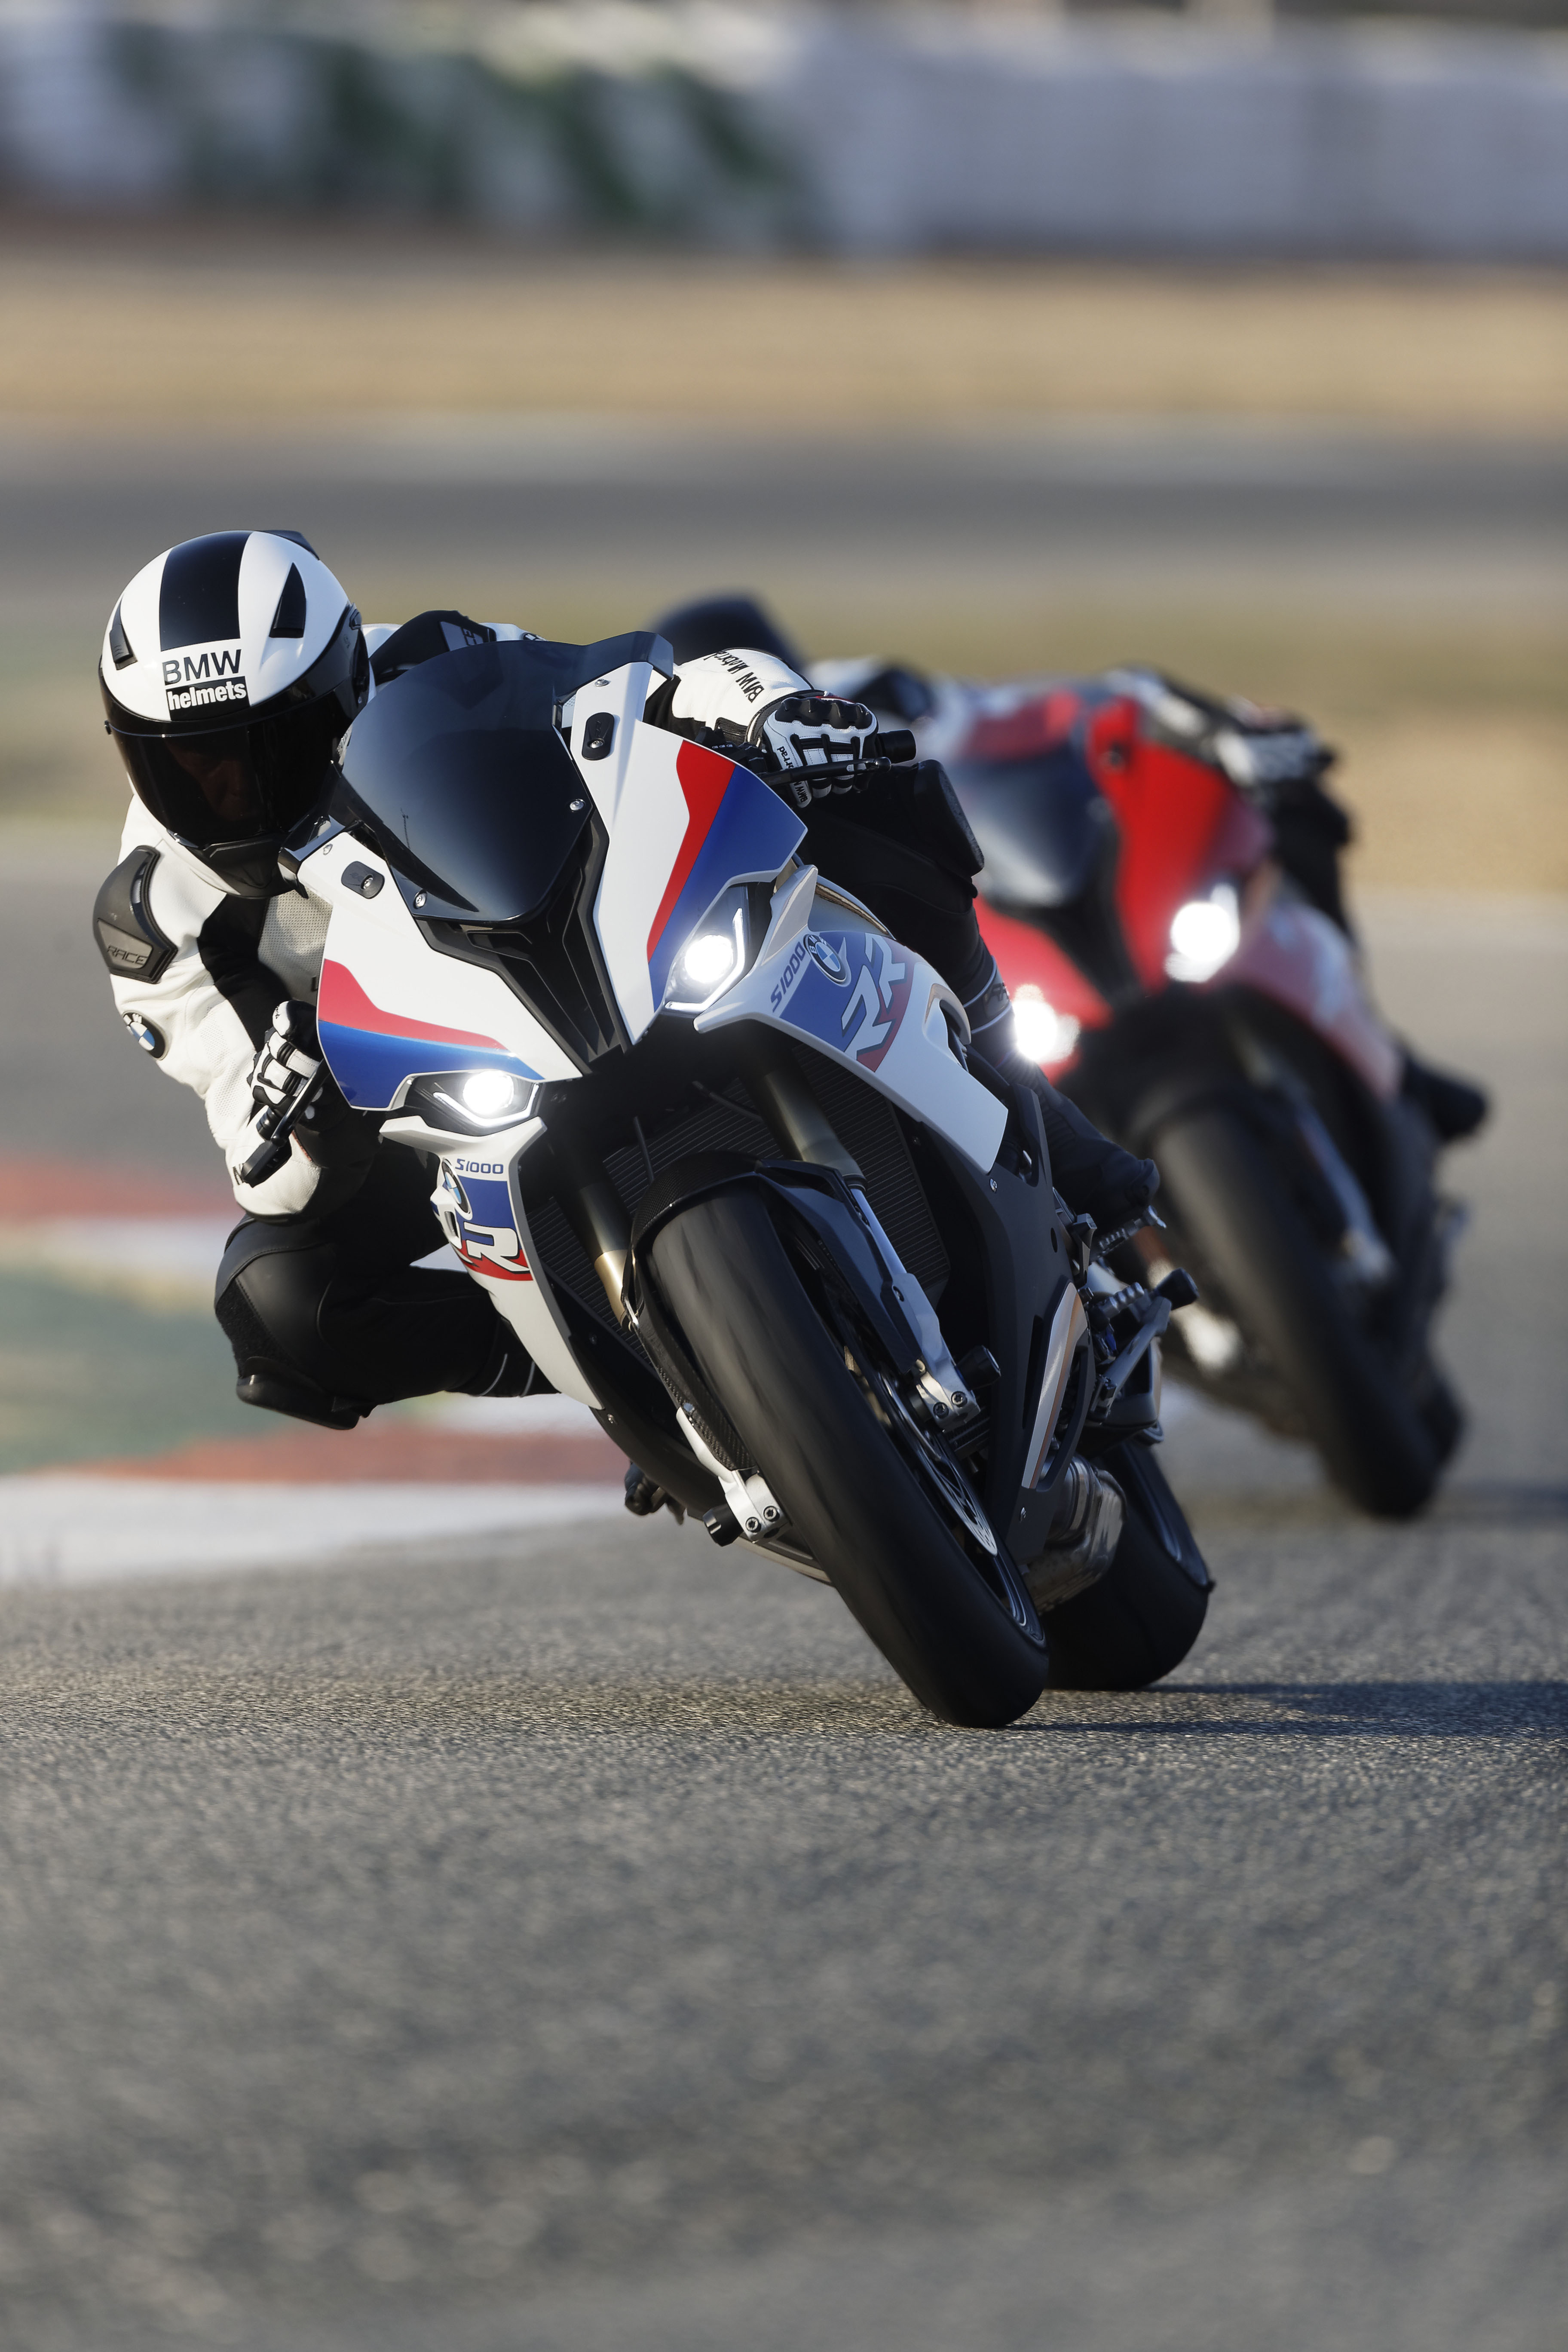 2019 BMW S1000RR First Look - Motorcycle.com